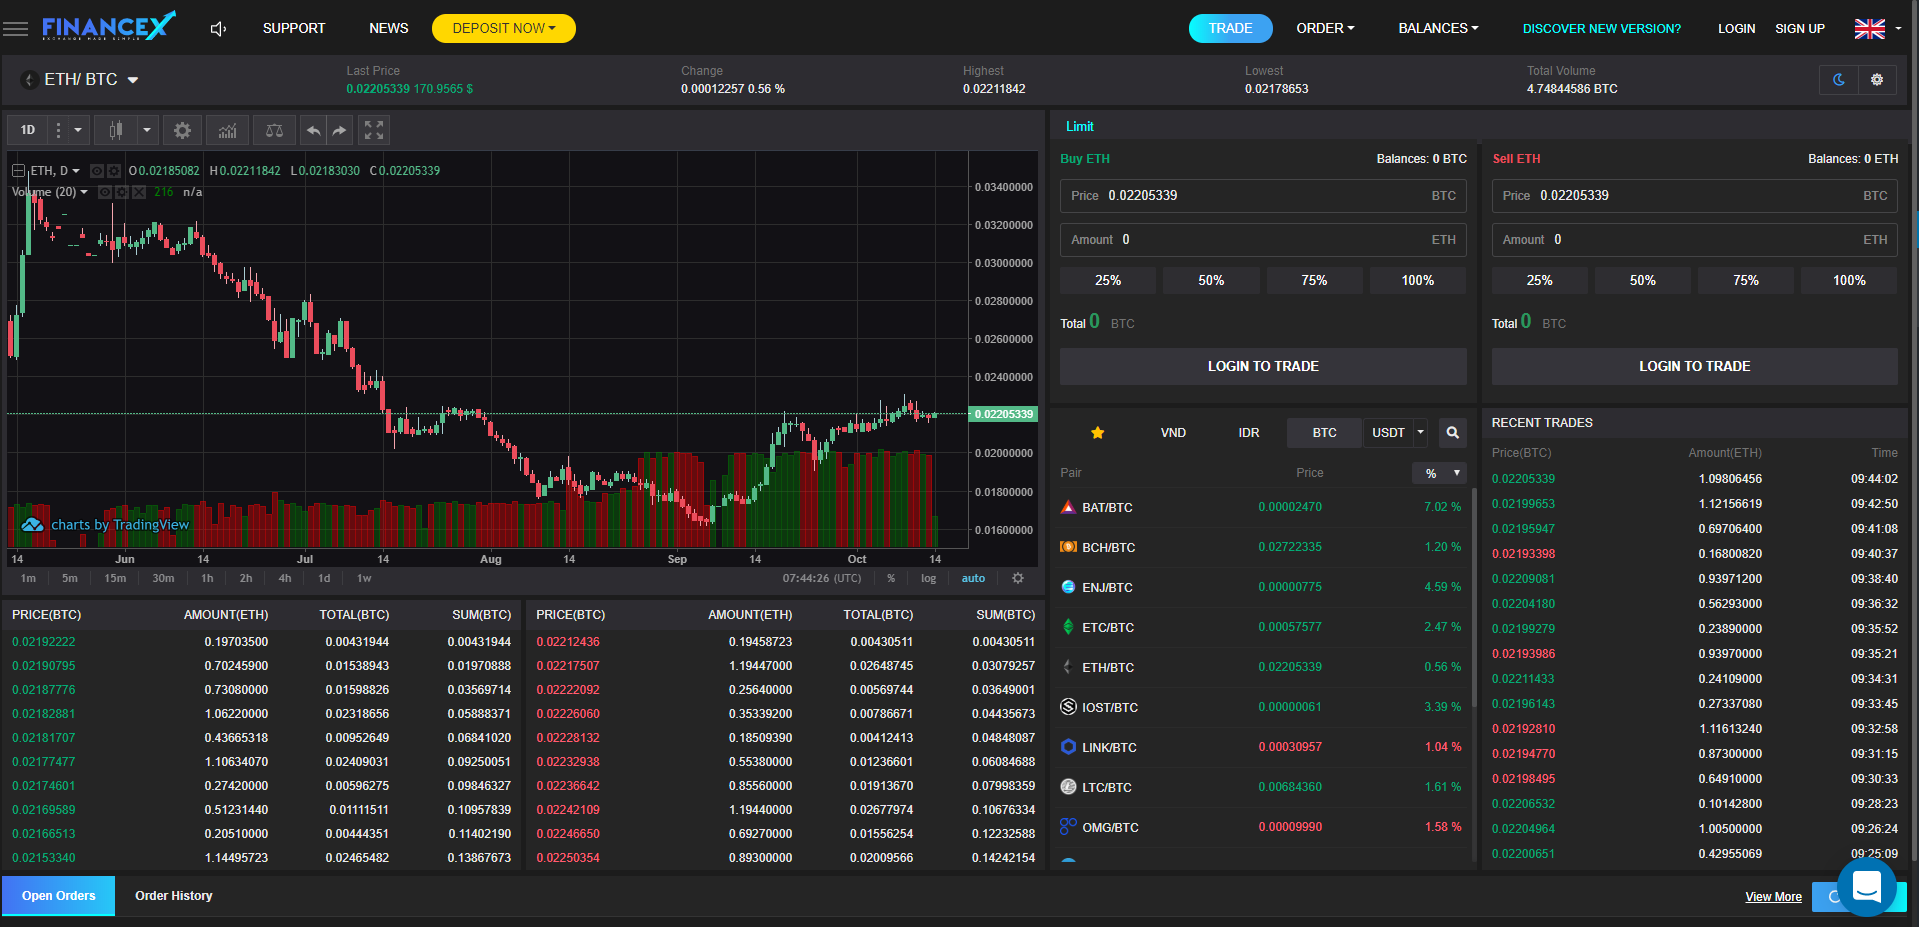 FinanceX Trading View